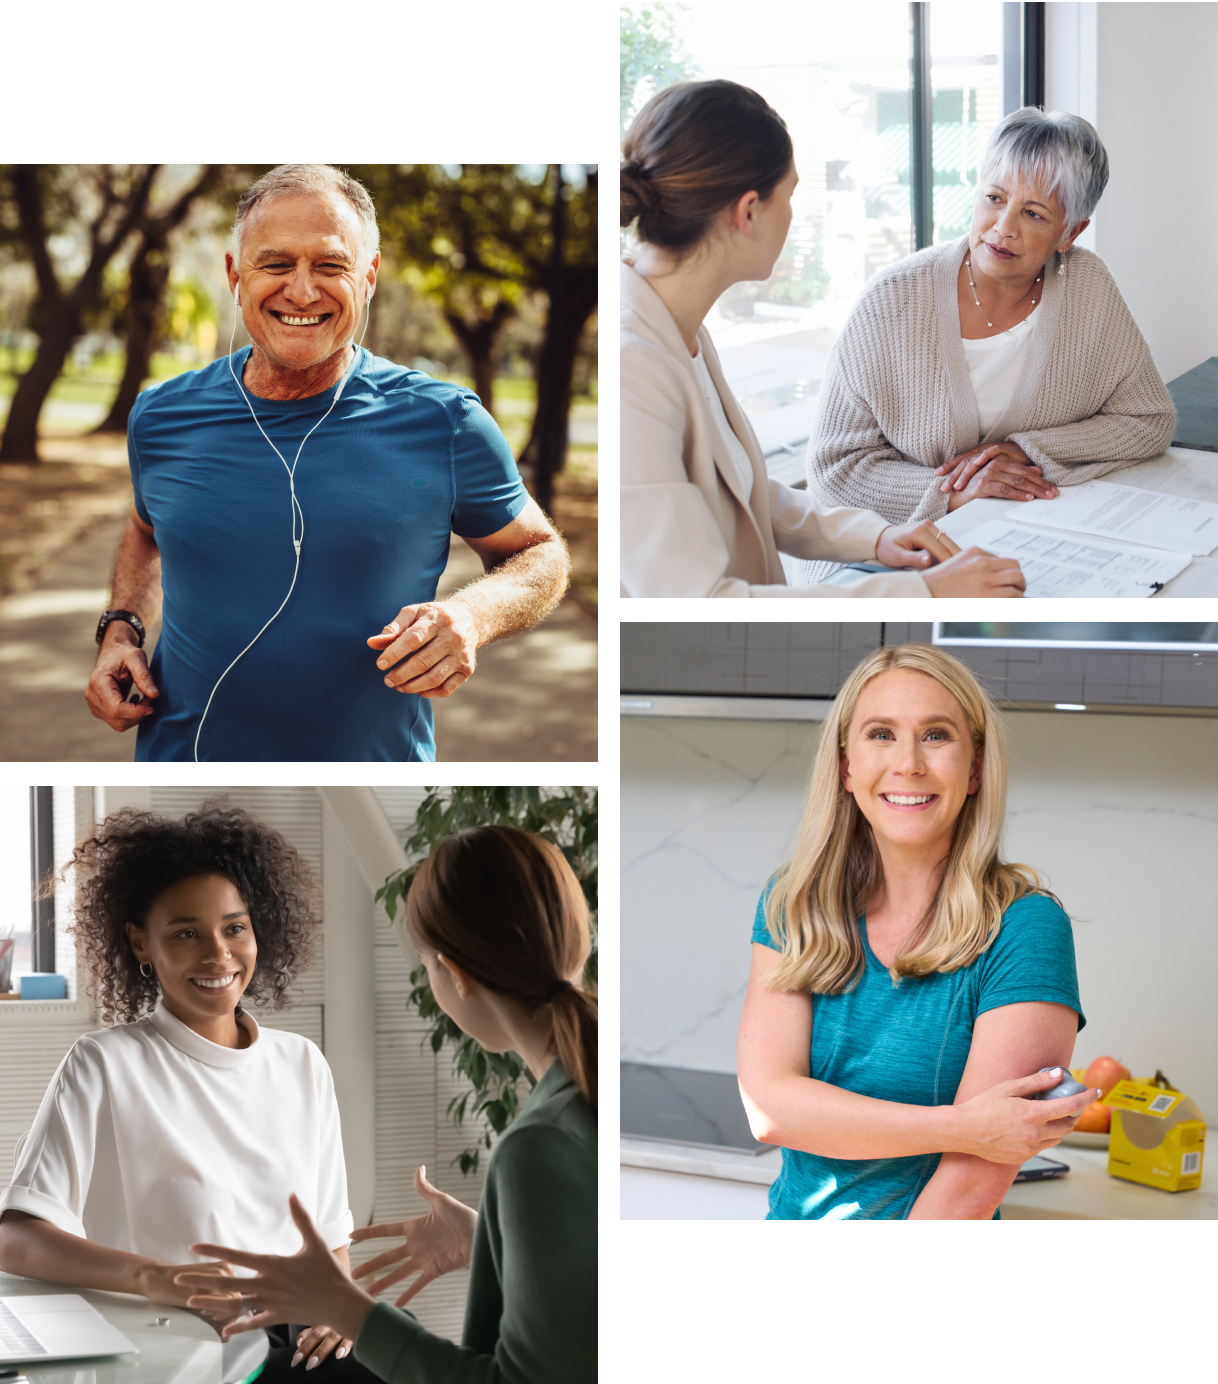 collage photo of partners and healthy activities